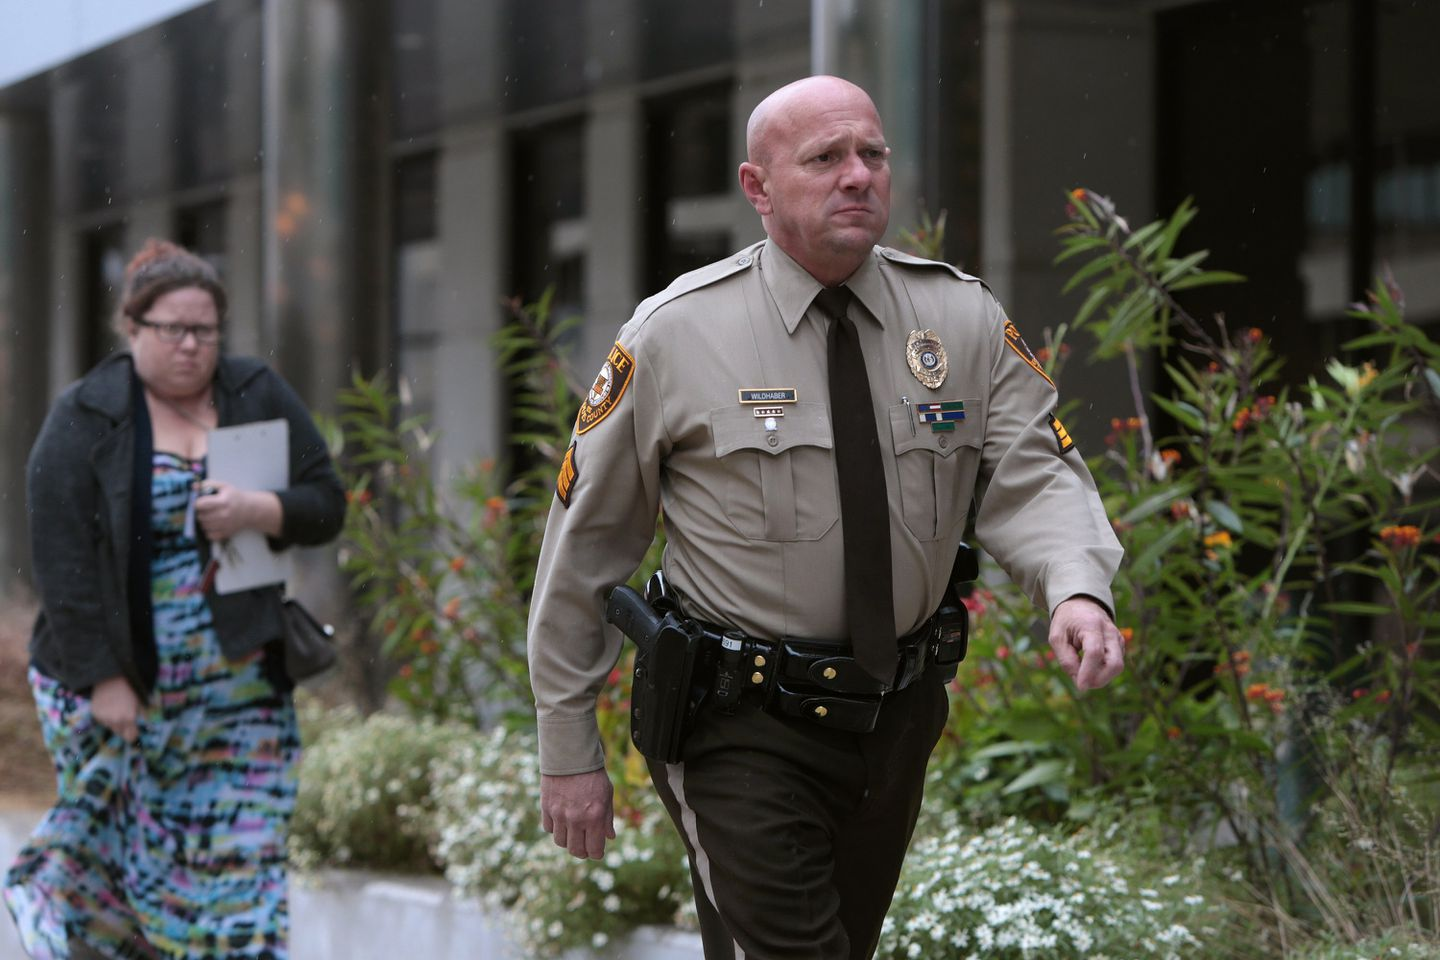 Allyson Is Watching 1997 jury awards nearly $20 million to police sergeant told to